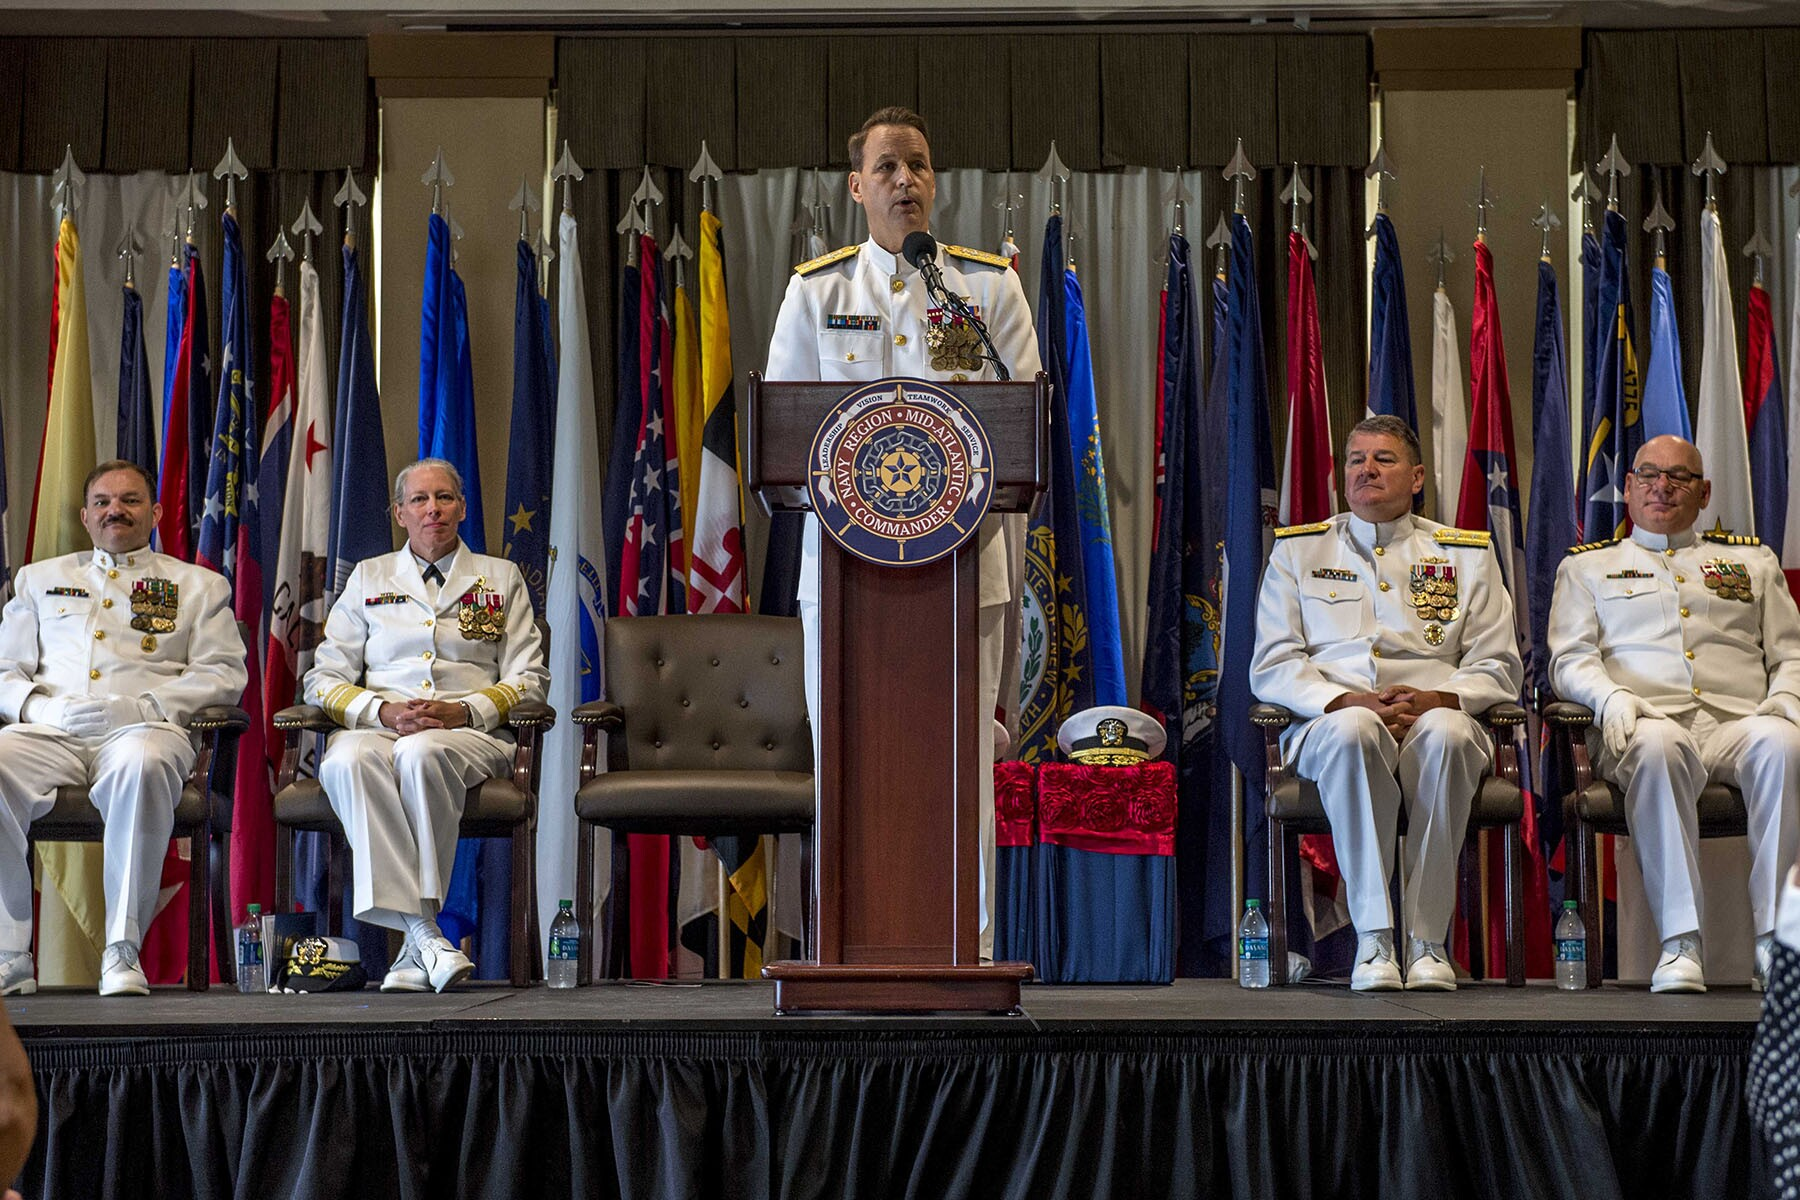 Photos: Nayv Region Mid-Atlantic changes command